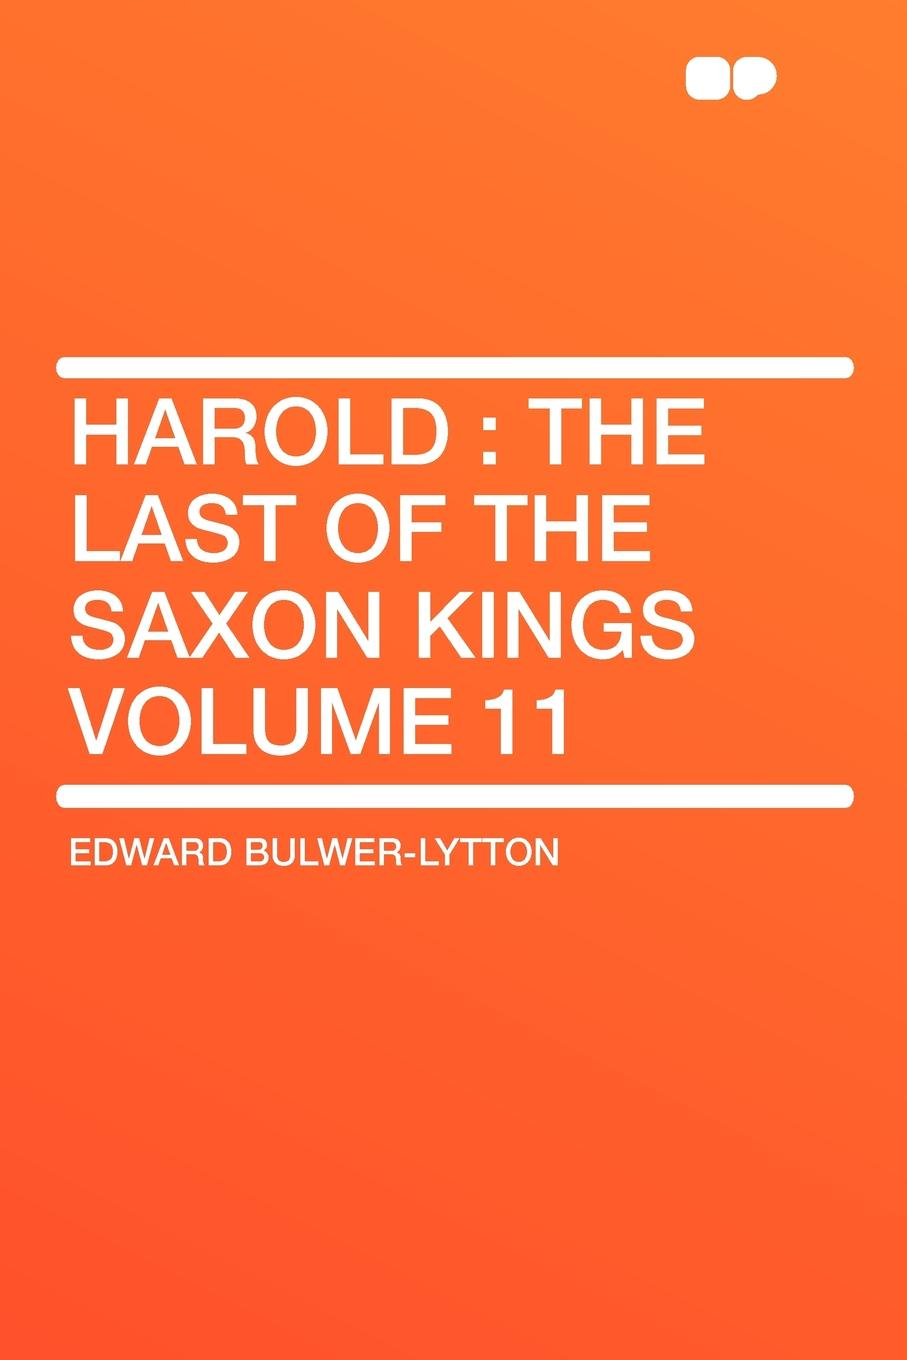 лучшая цена Edward Bulwer-Lytton Harold. the Last of the Saxon Kings Volume 11